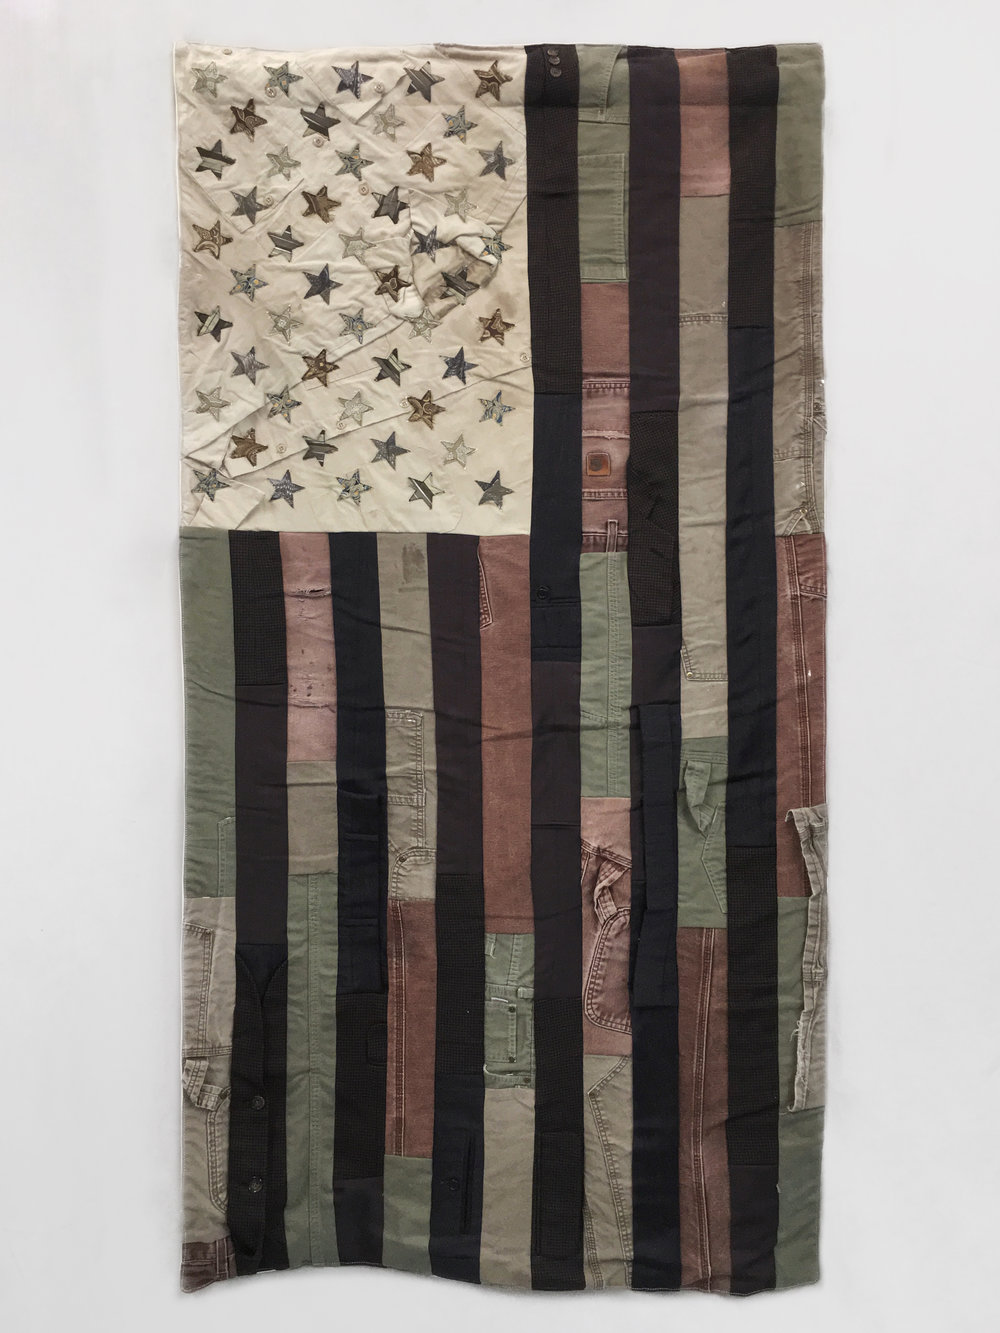 Flag #6 • 68 X 36 • Carpenter's Pants, Suits, Collared Shirts, Neckties